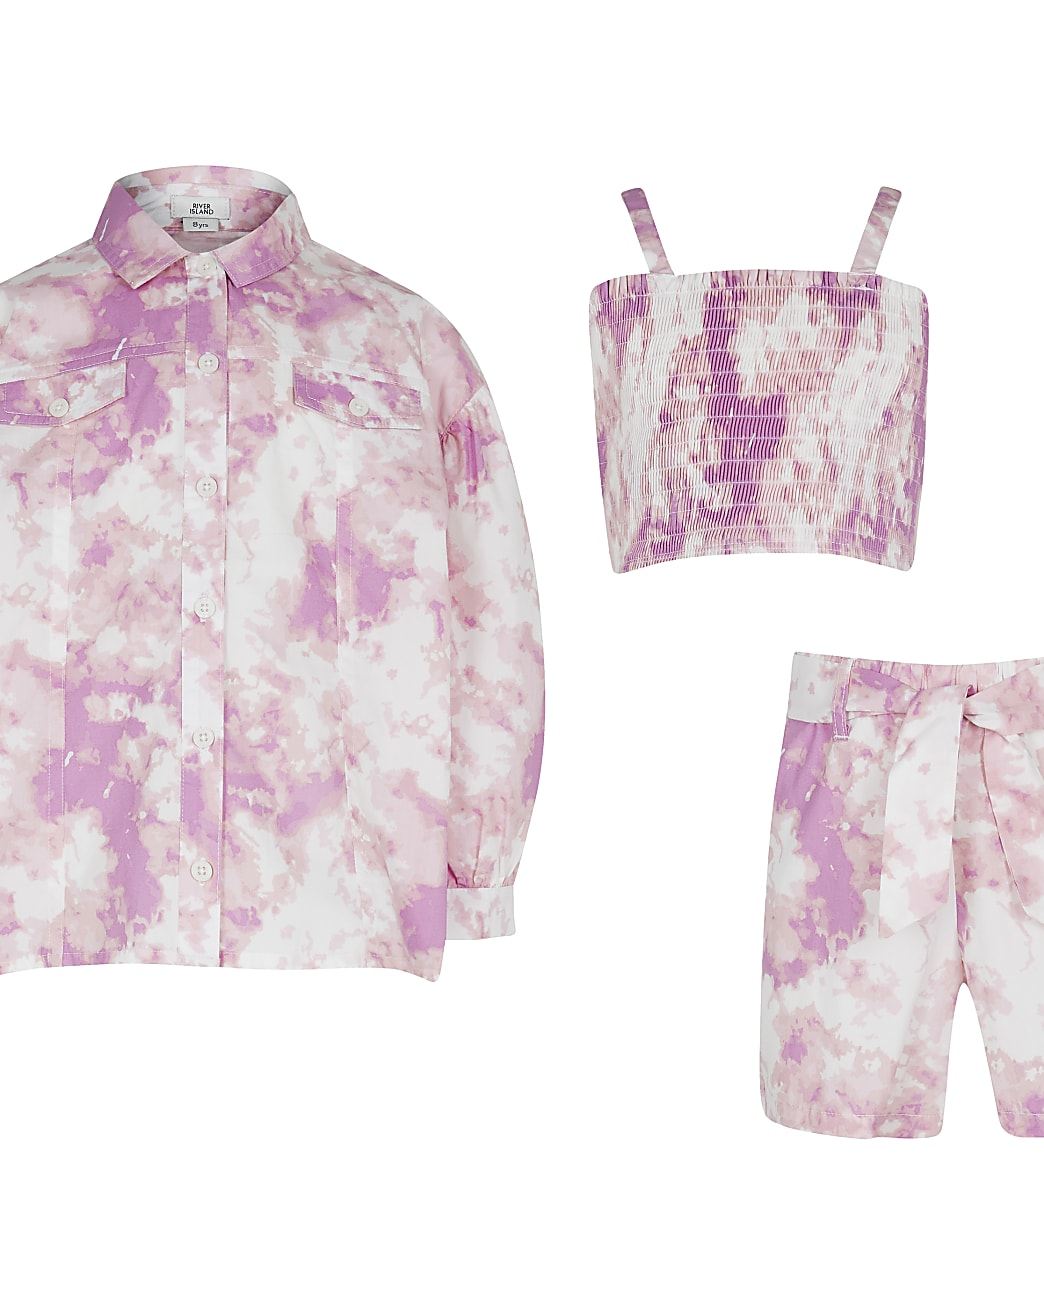 Girls pink tie dye shirt and shorts outfit